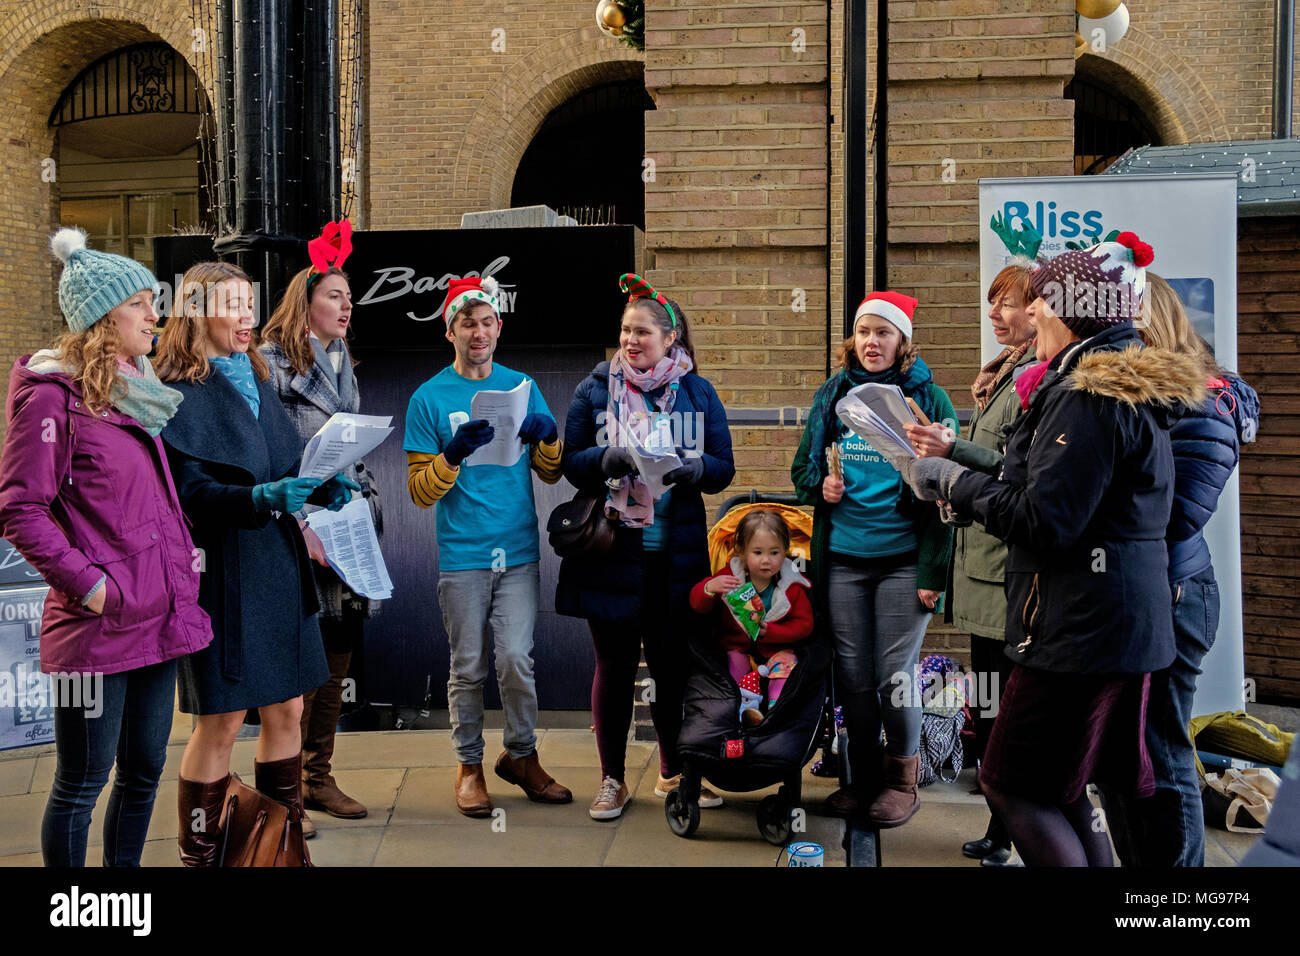 Bliss Charity Stock Photos Images Alamy Winter Hat Wh 97 Nine Volunteers Sing Christmas Carols At London Bridge Station To Raise Funds Awareness For